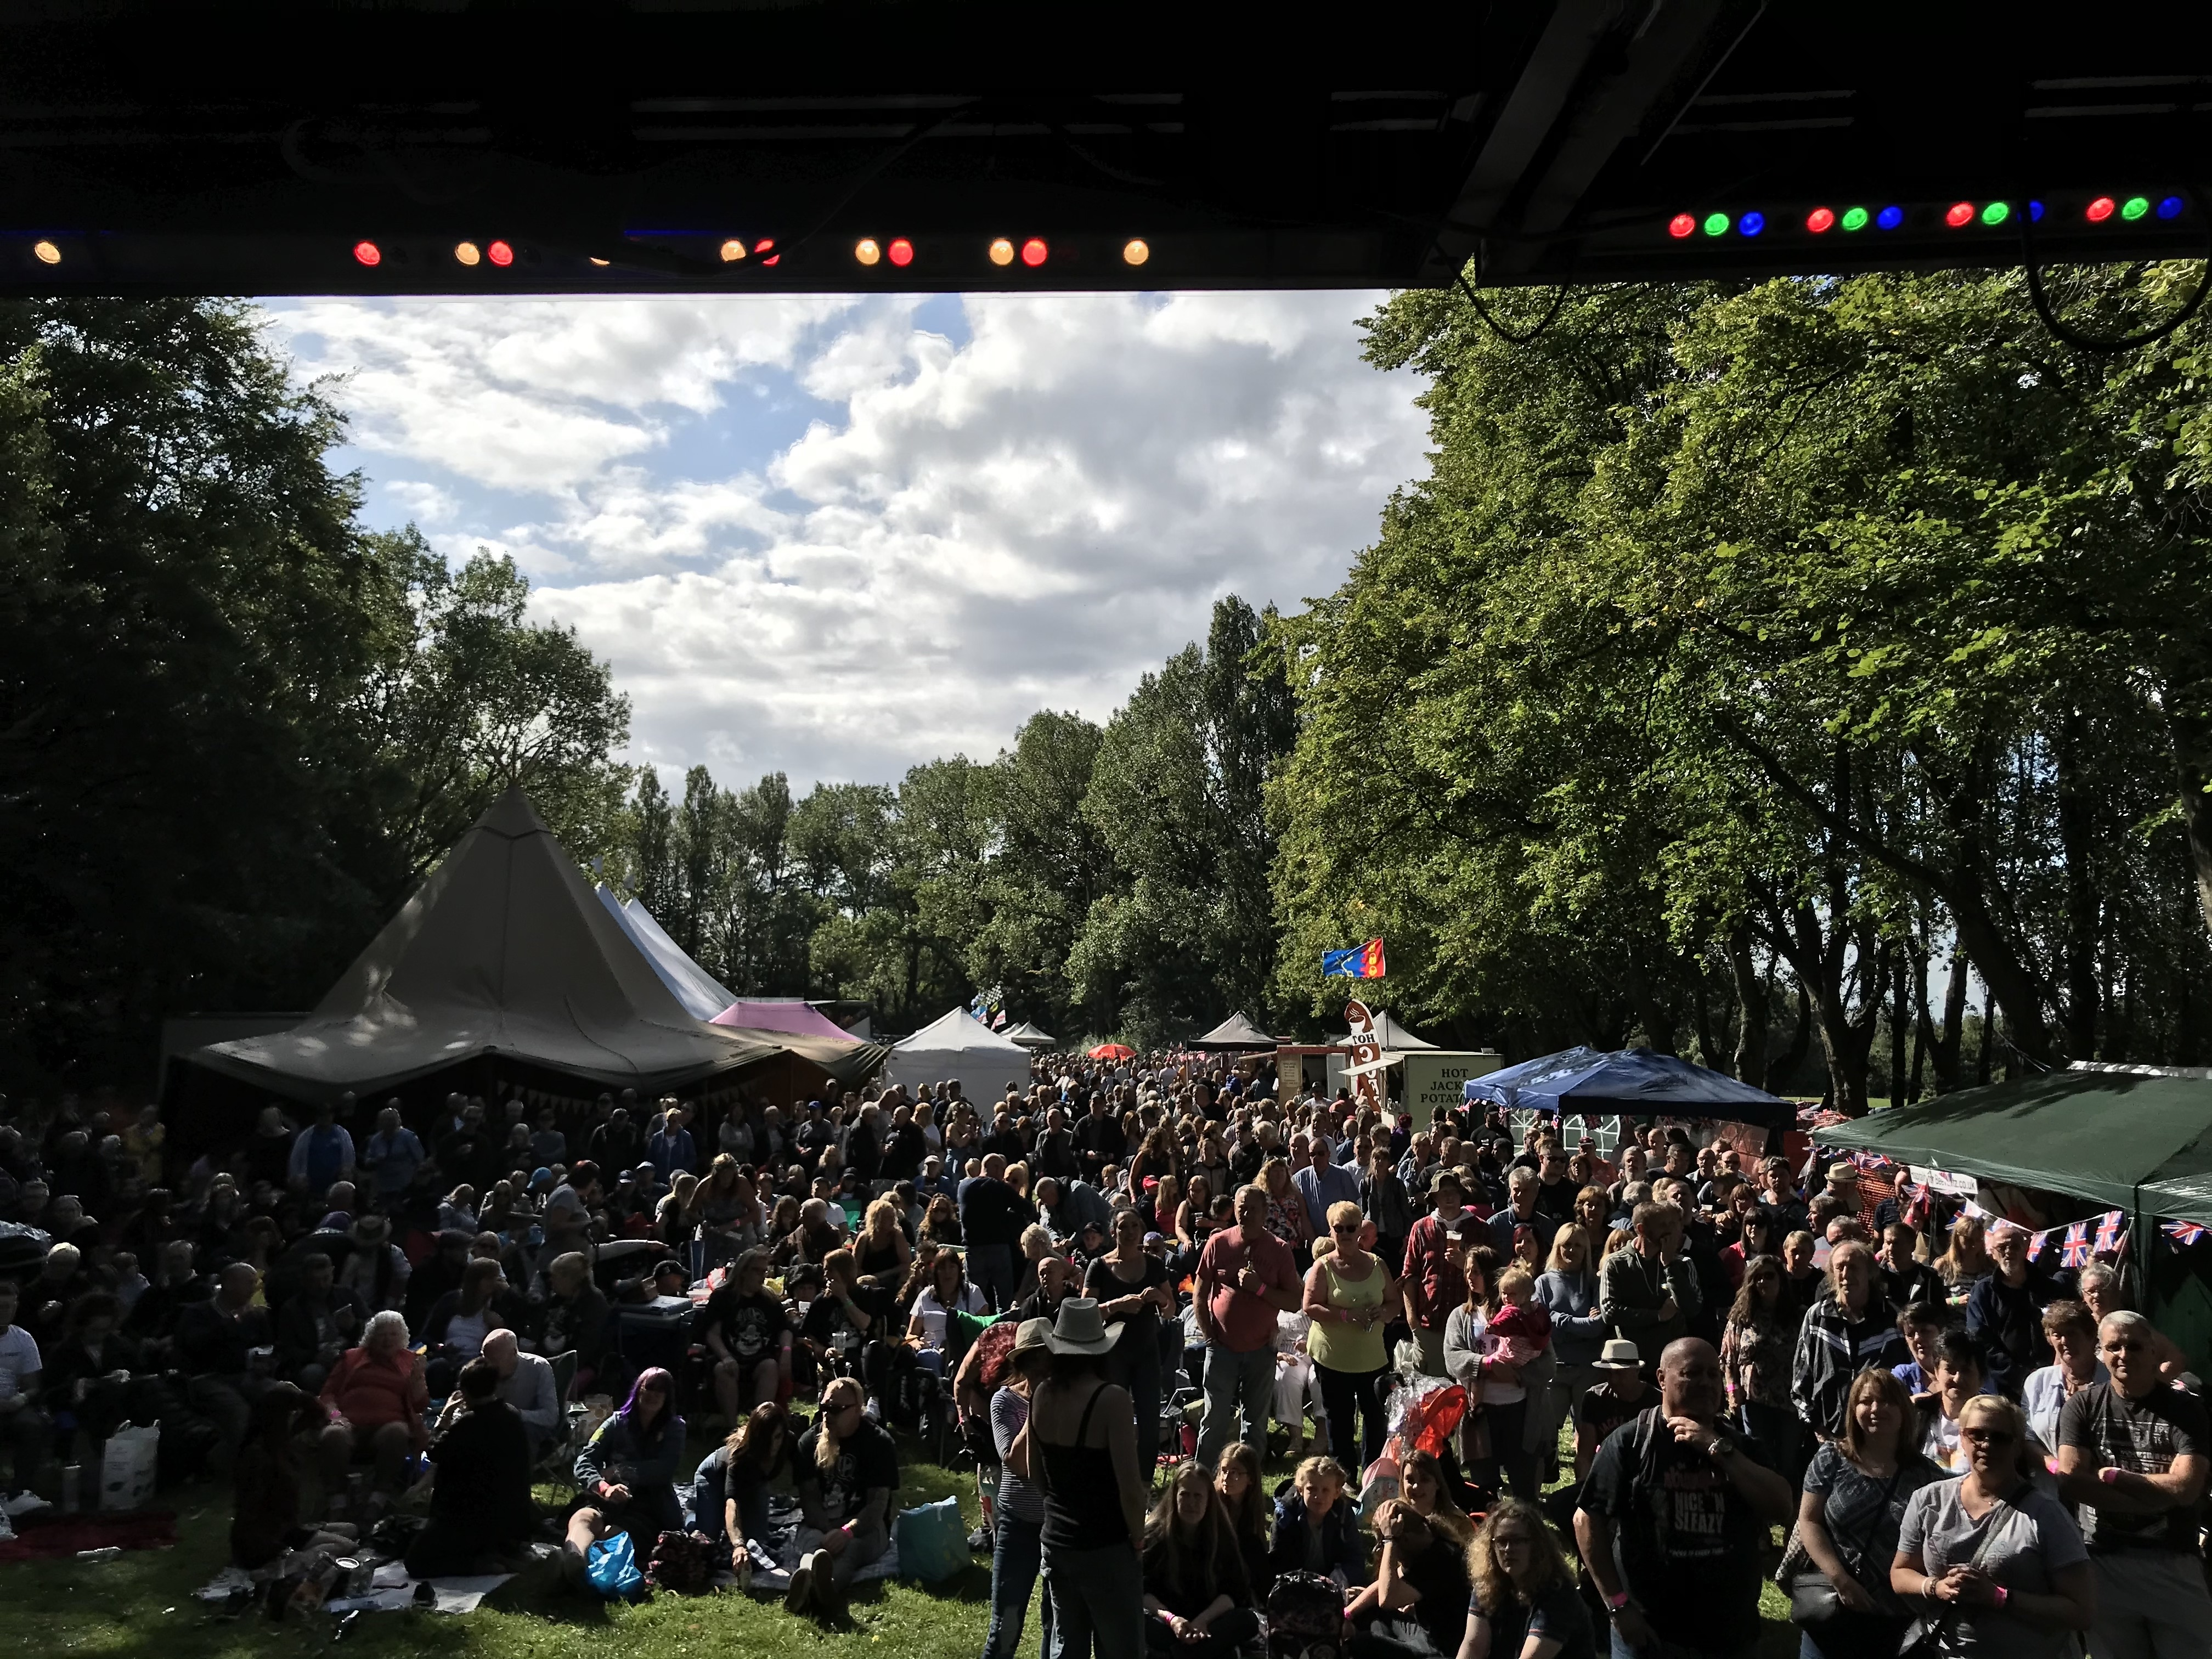 Lock Stock Festival 2019 - Crowd 01